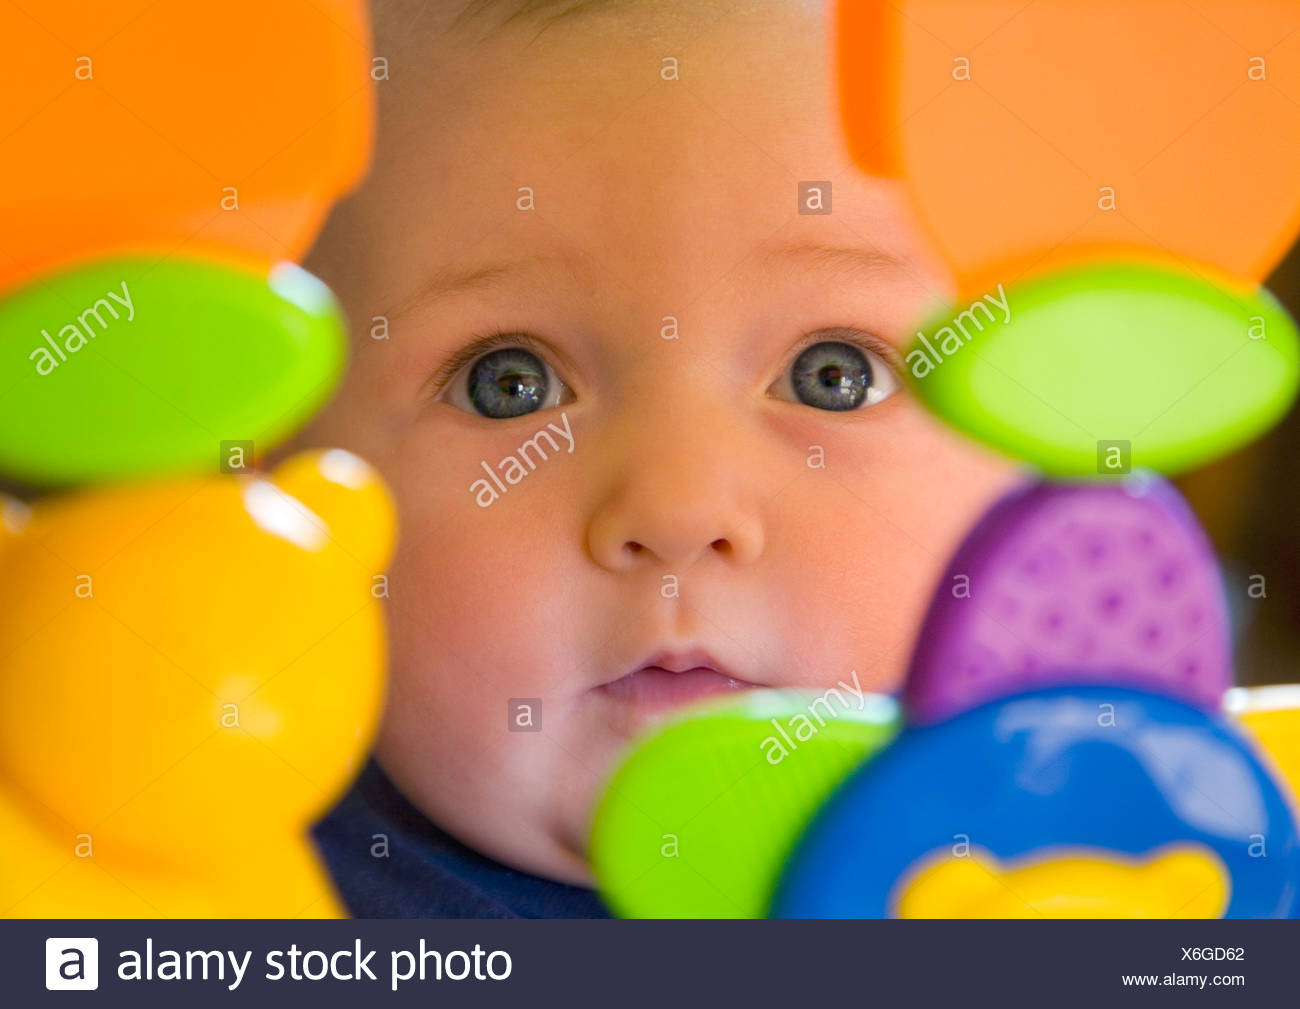 Baby girl 6 month old toddler with blue eyes looking through plastic toys - Stock Image